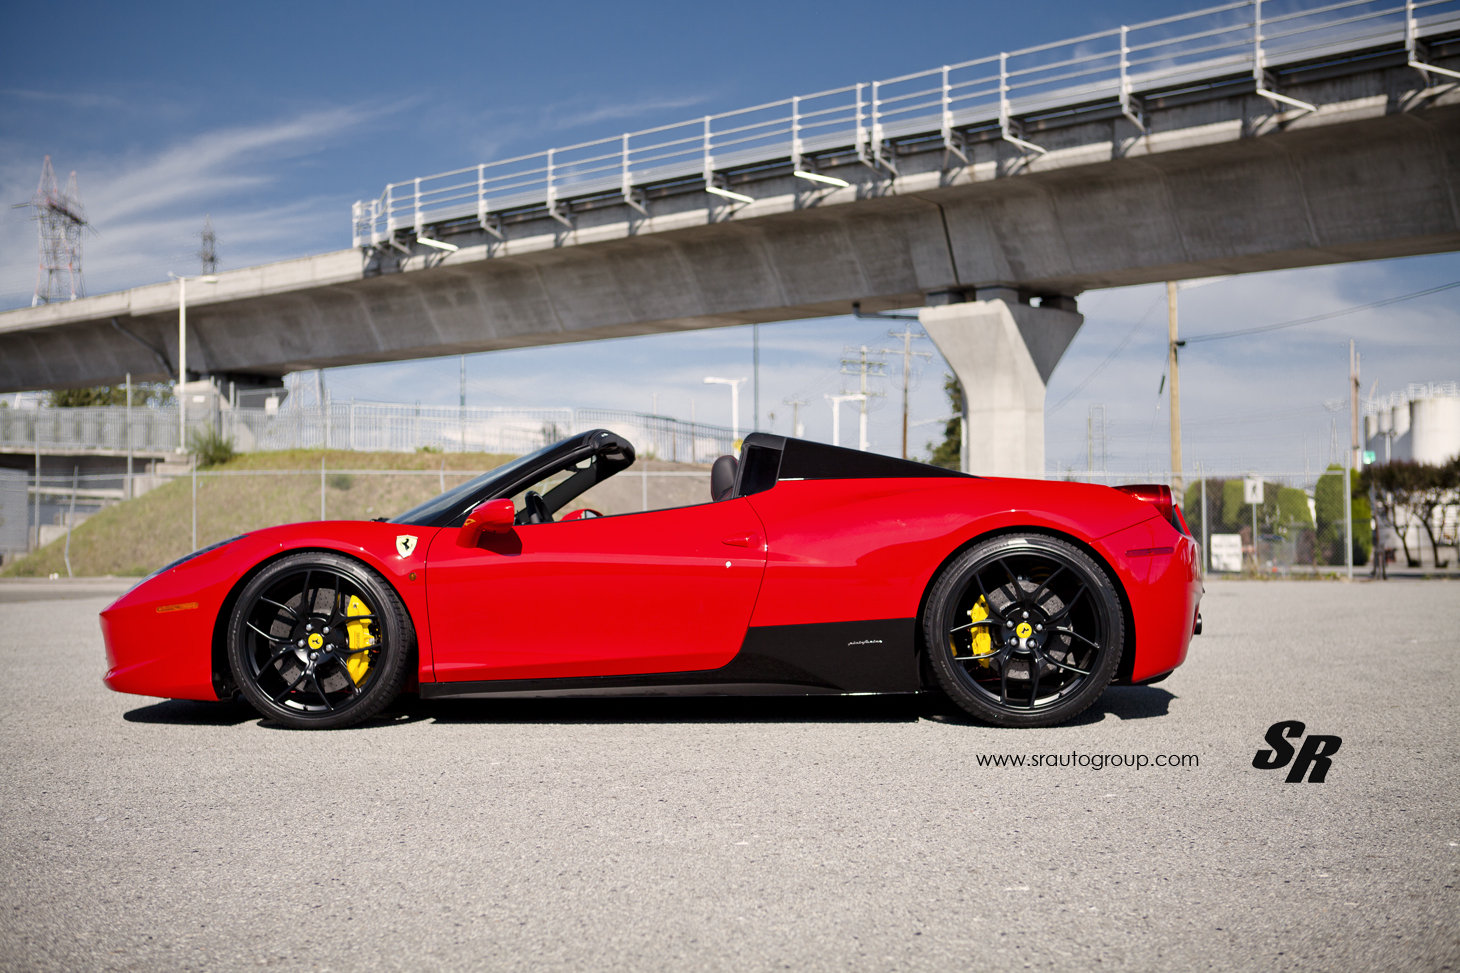 http://s1.cdn.autoevolution.com/images/news/gallery/novitec-rosso-ferrari-458-spider-released-by-sr-auto-photo-gallery_6.jpg